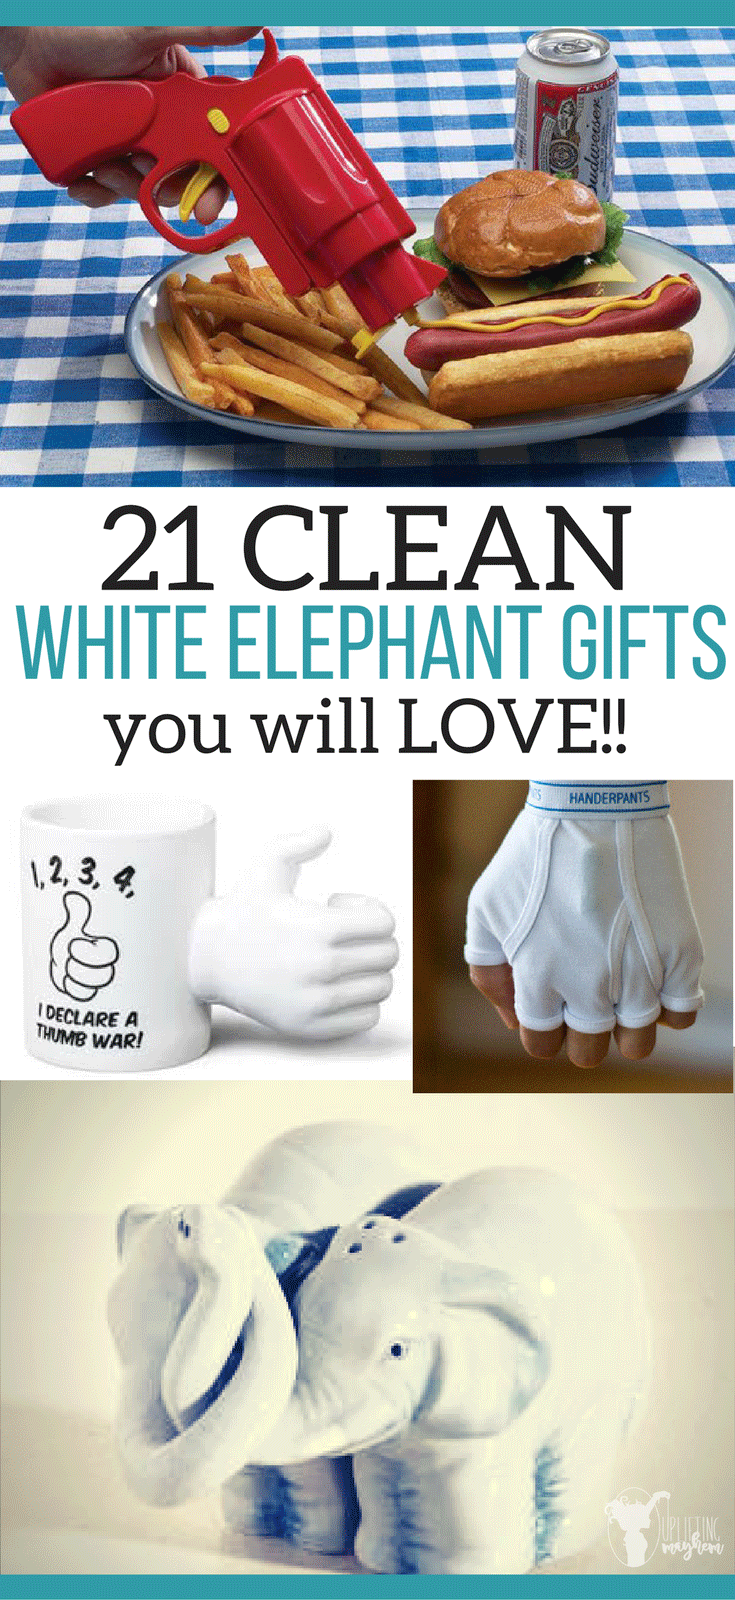 21 Clean White Elephant Gifts You Will LOVE! These white elephant gifts are funny and clean! Perfect for your family party or any other party